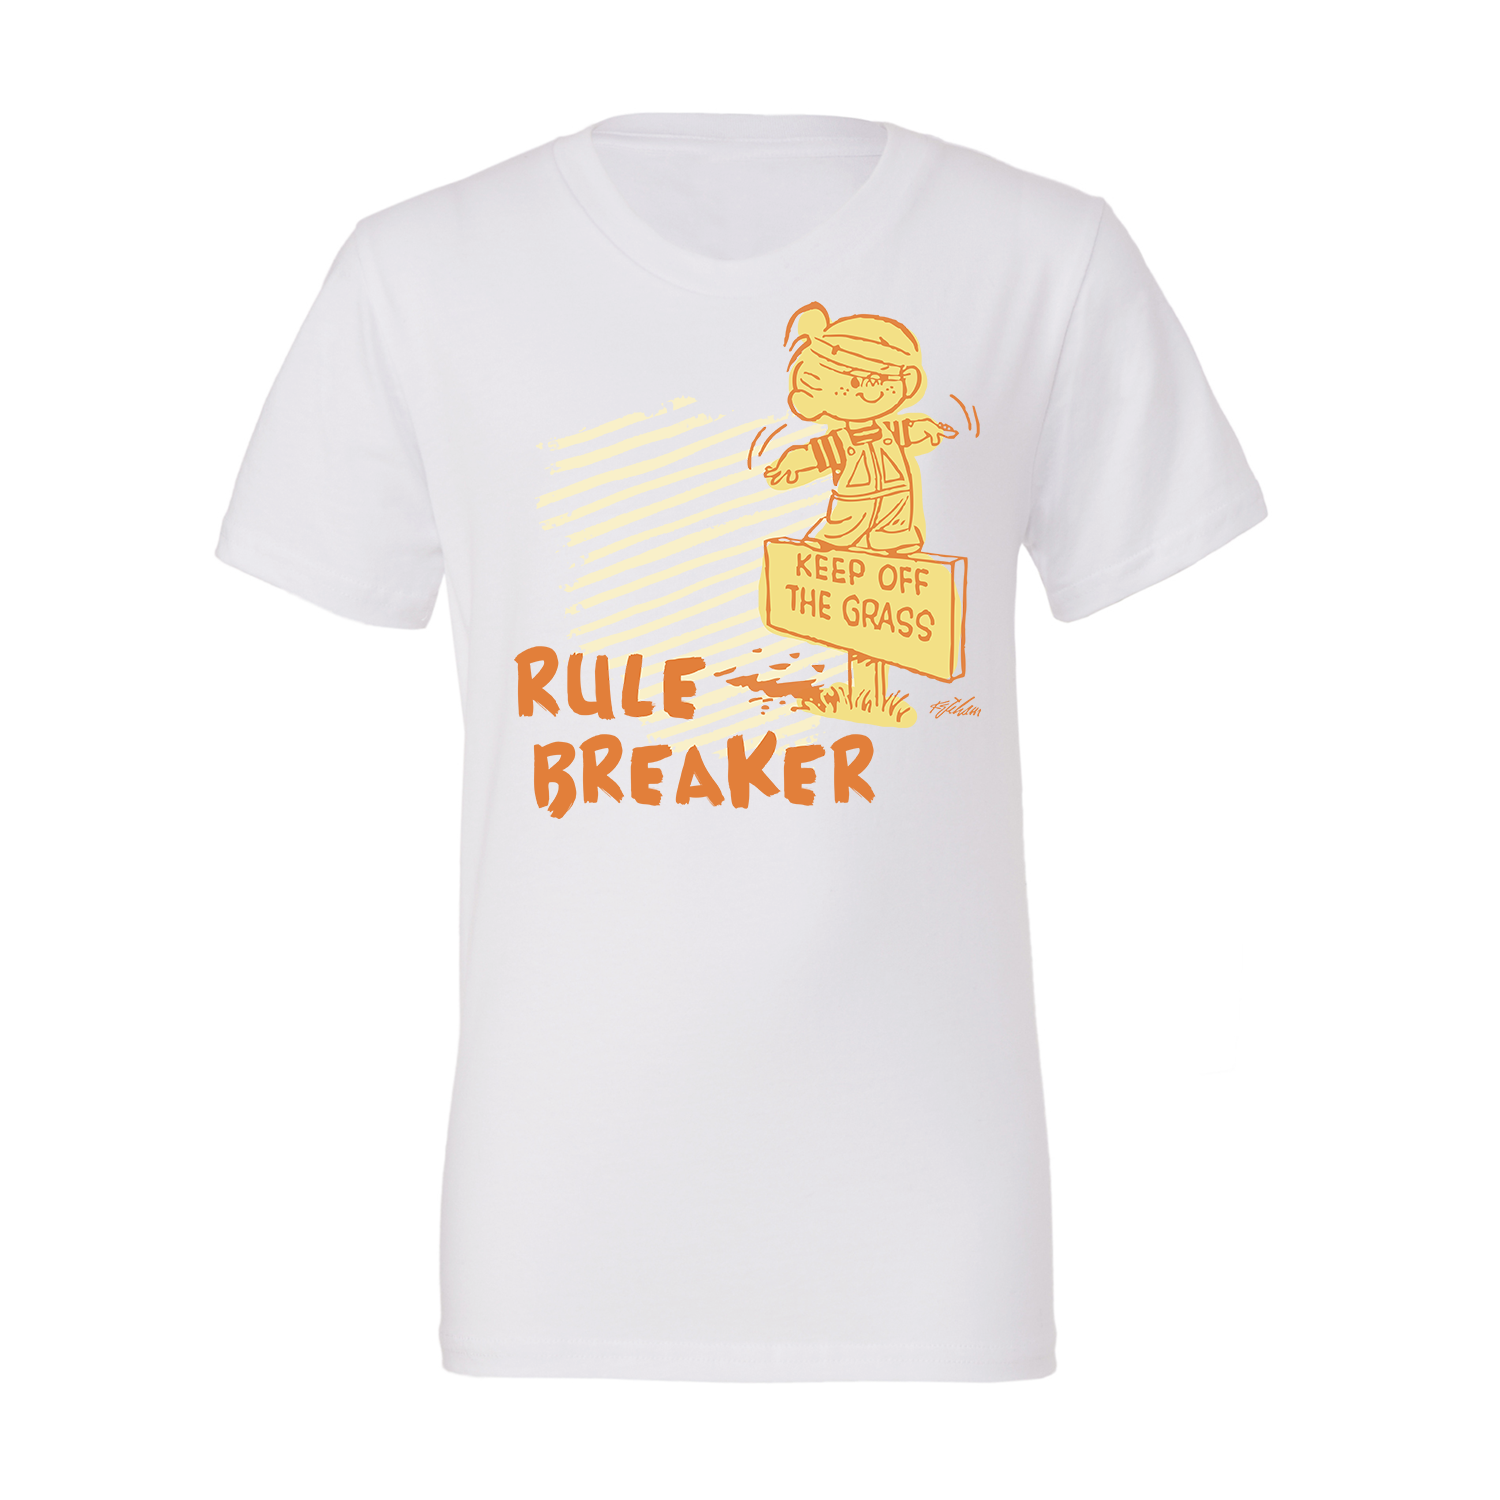 Dennis the Menace 'Rule Breaker' Youth T Shirt White